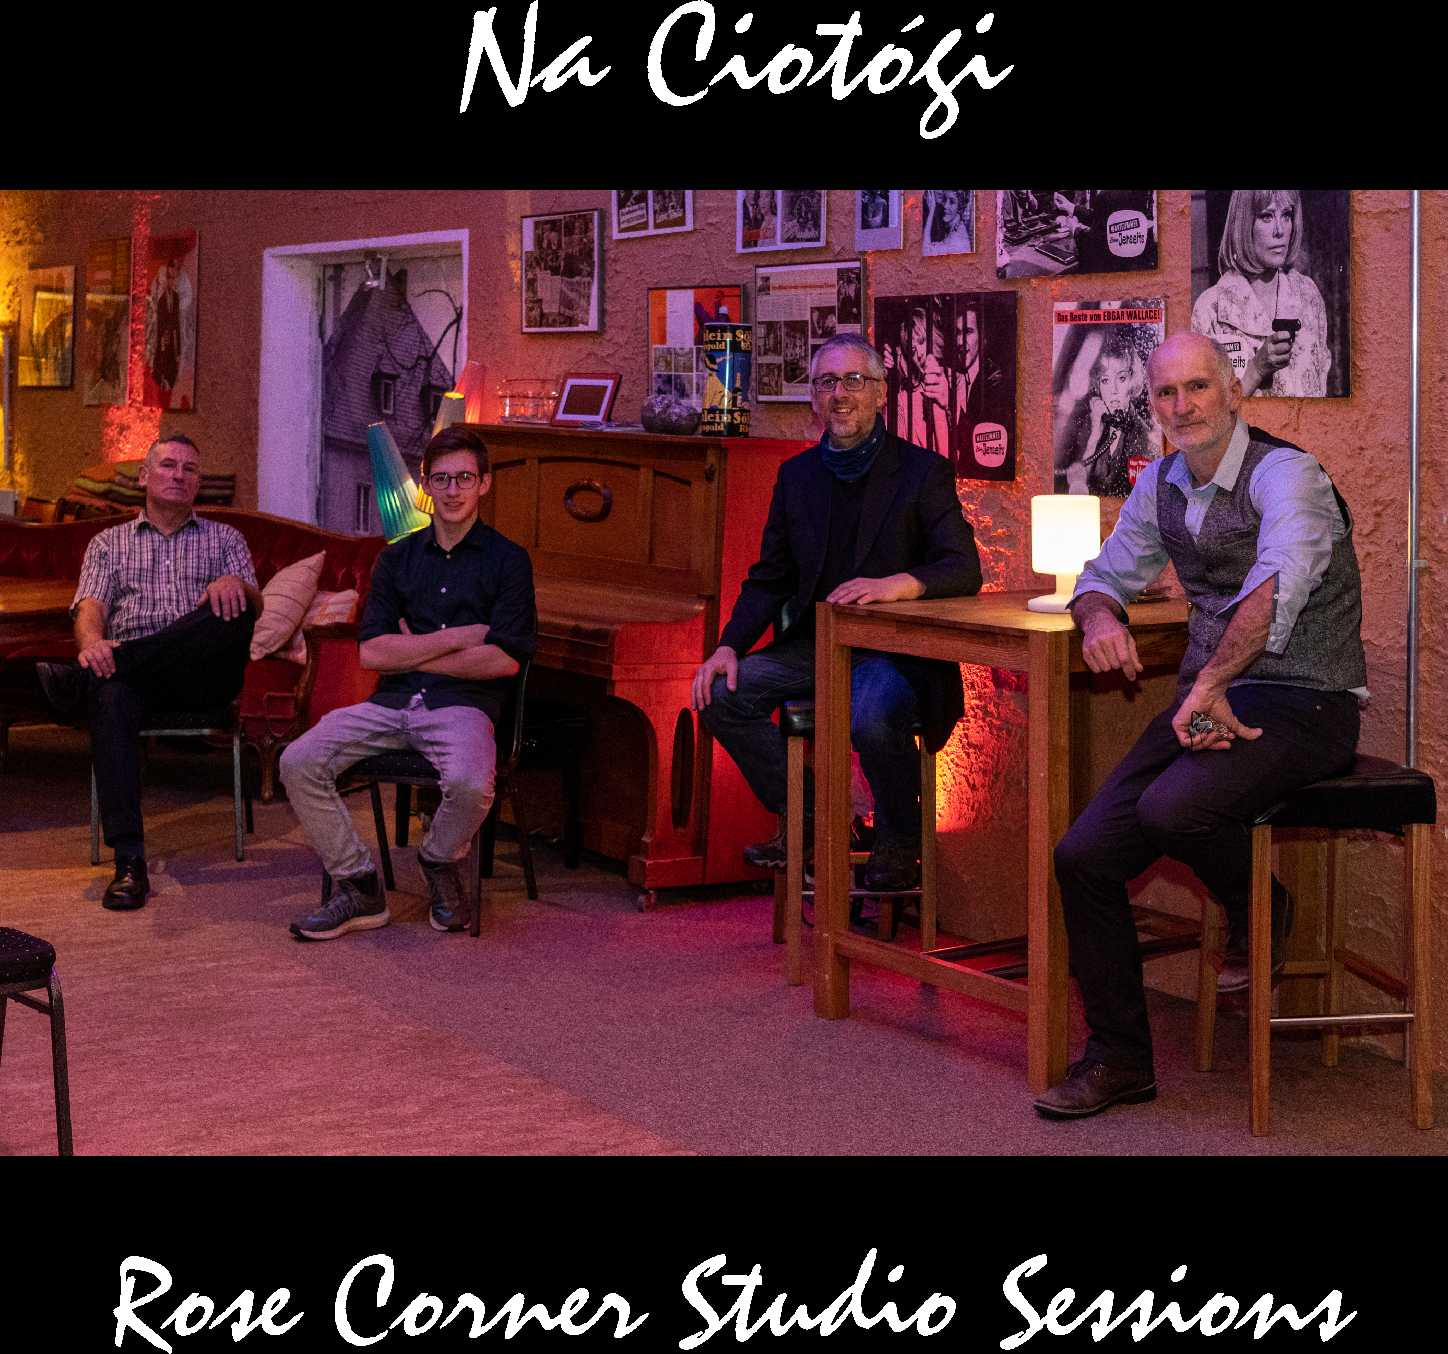 Rose Corner Studio Session 2020 CD & Digital Download & Online Gig of CD Launch available from 03.04.21